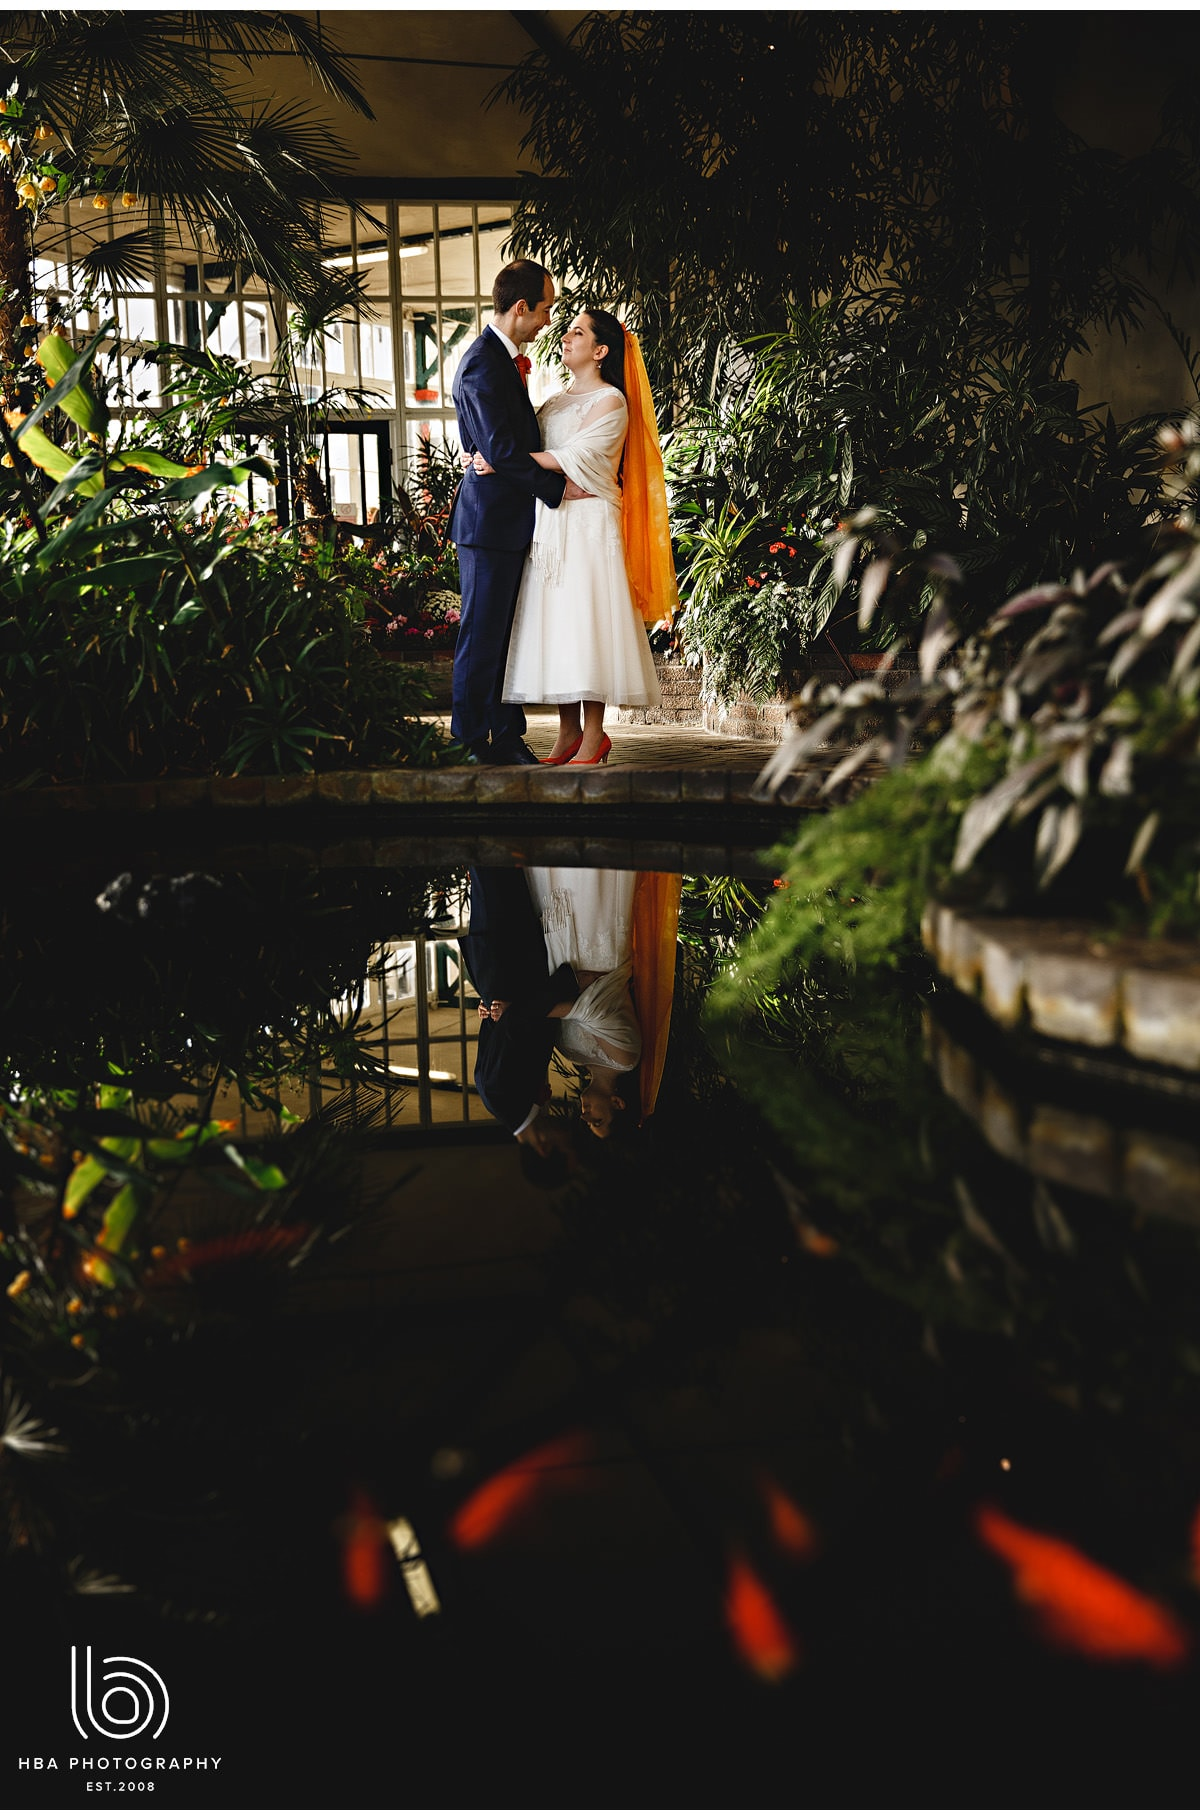 the bride and groom reflected in the pond